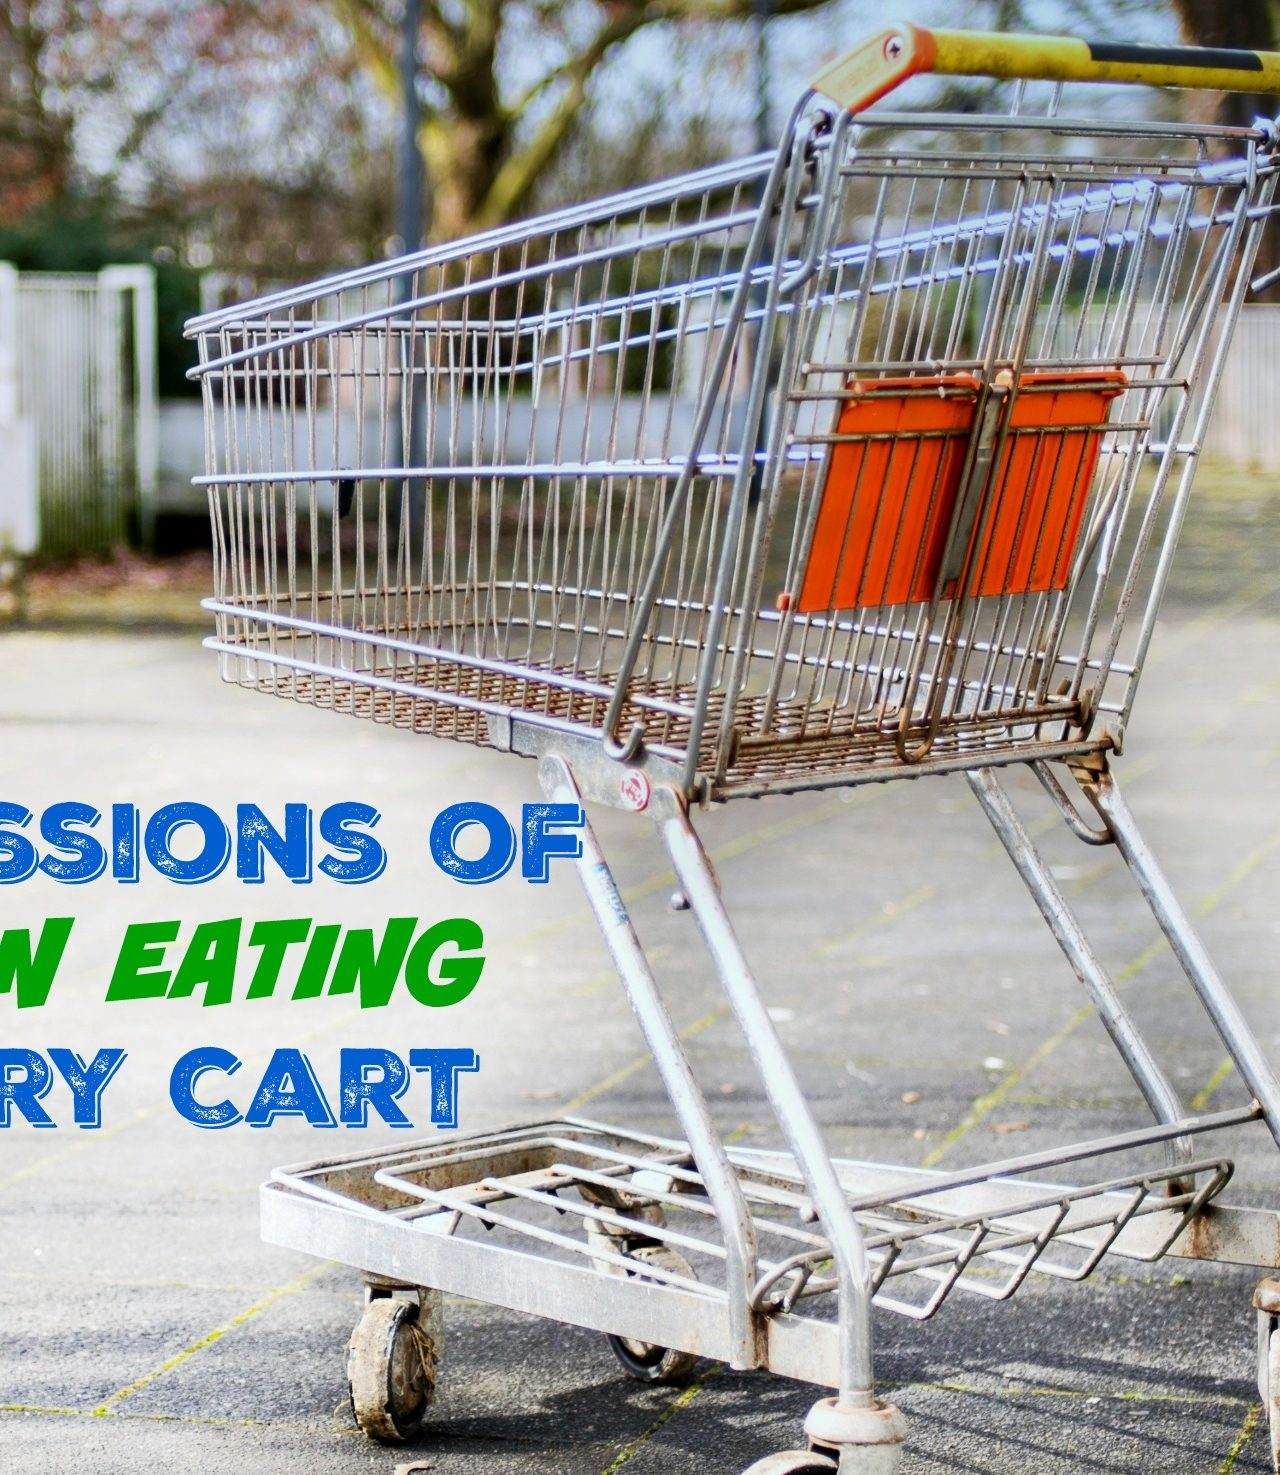 Confessions of a Clean Eating Shopping Cart Part 2